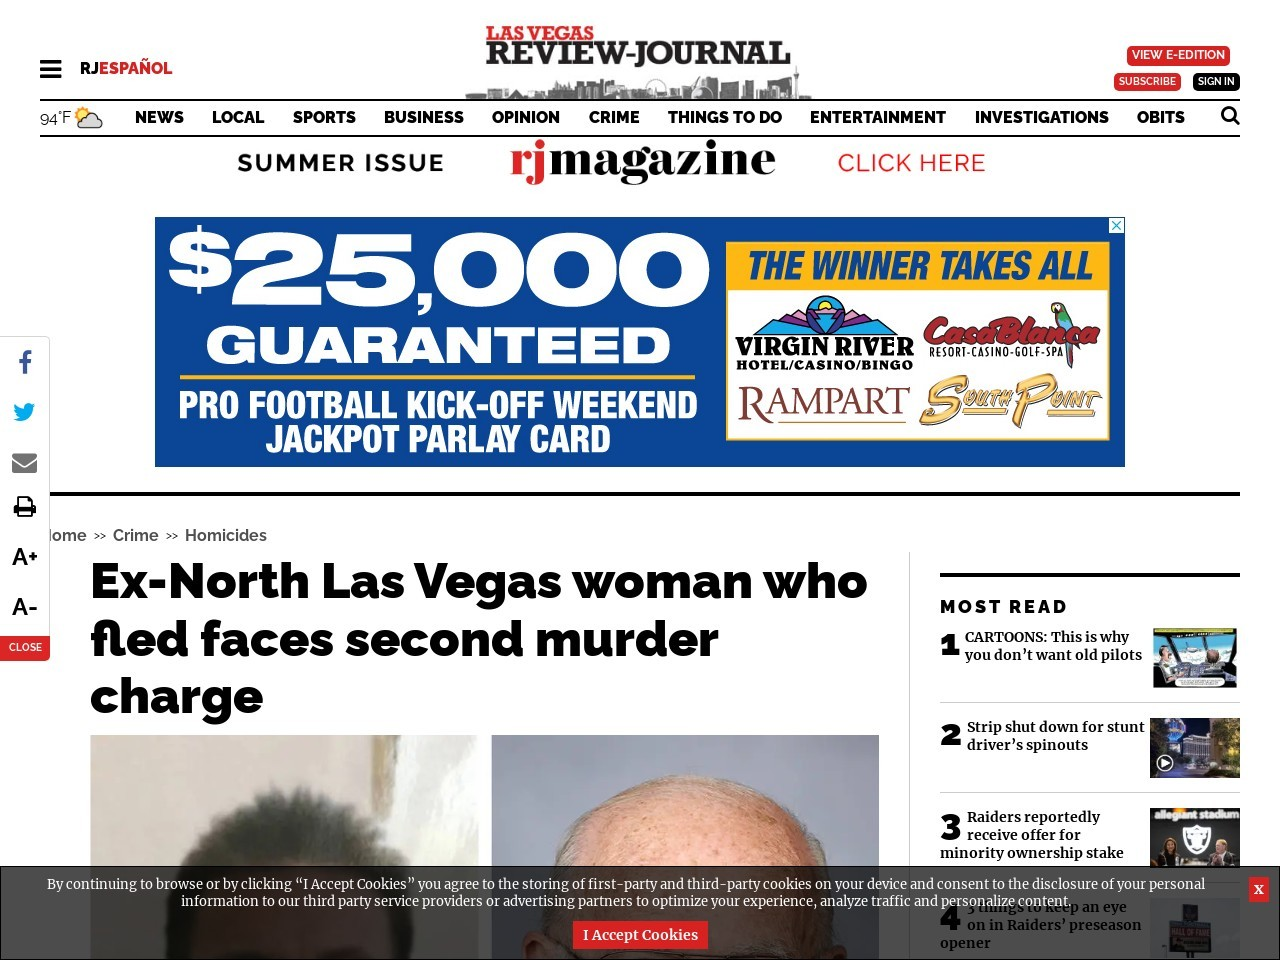 Ex-North Las Vegas woman who fled faces second murder charge